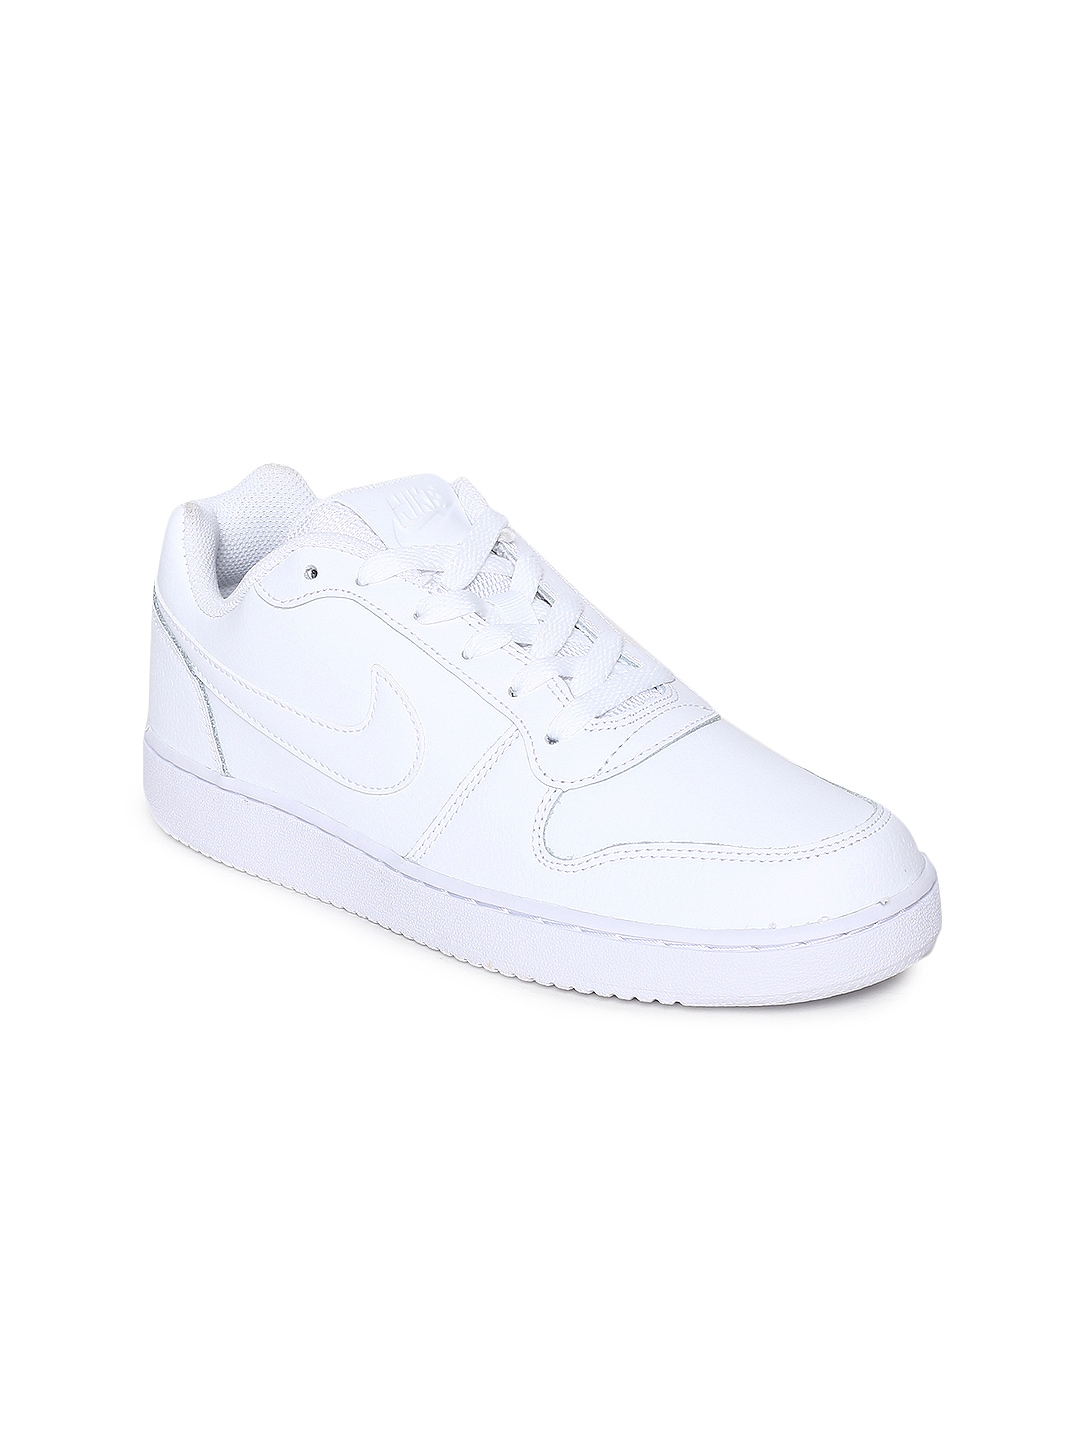 the latest d4f49 d981c Buy Nike Women White Court Borough Low Regular Sneakers - Casual ...